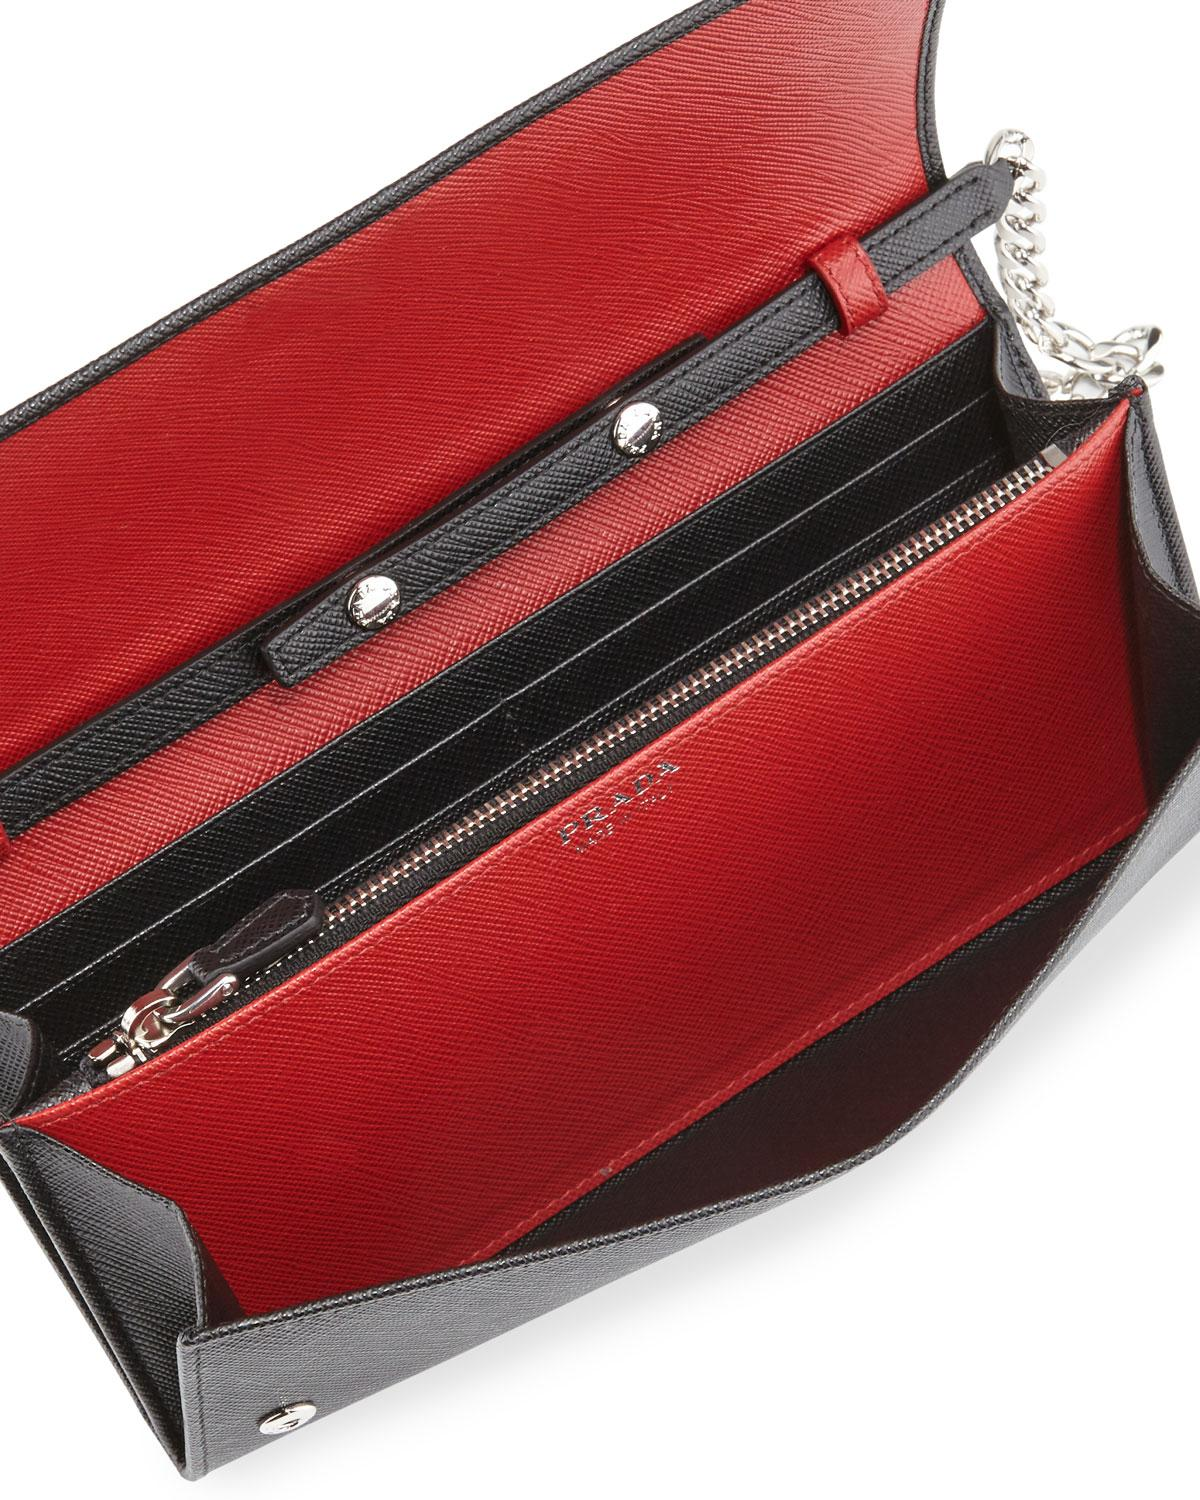 334a833c369d ... clearance prada saffiano wallet on chain made in italy bicolor wallet  cross body bag. 123456789101112